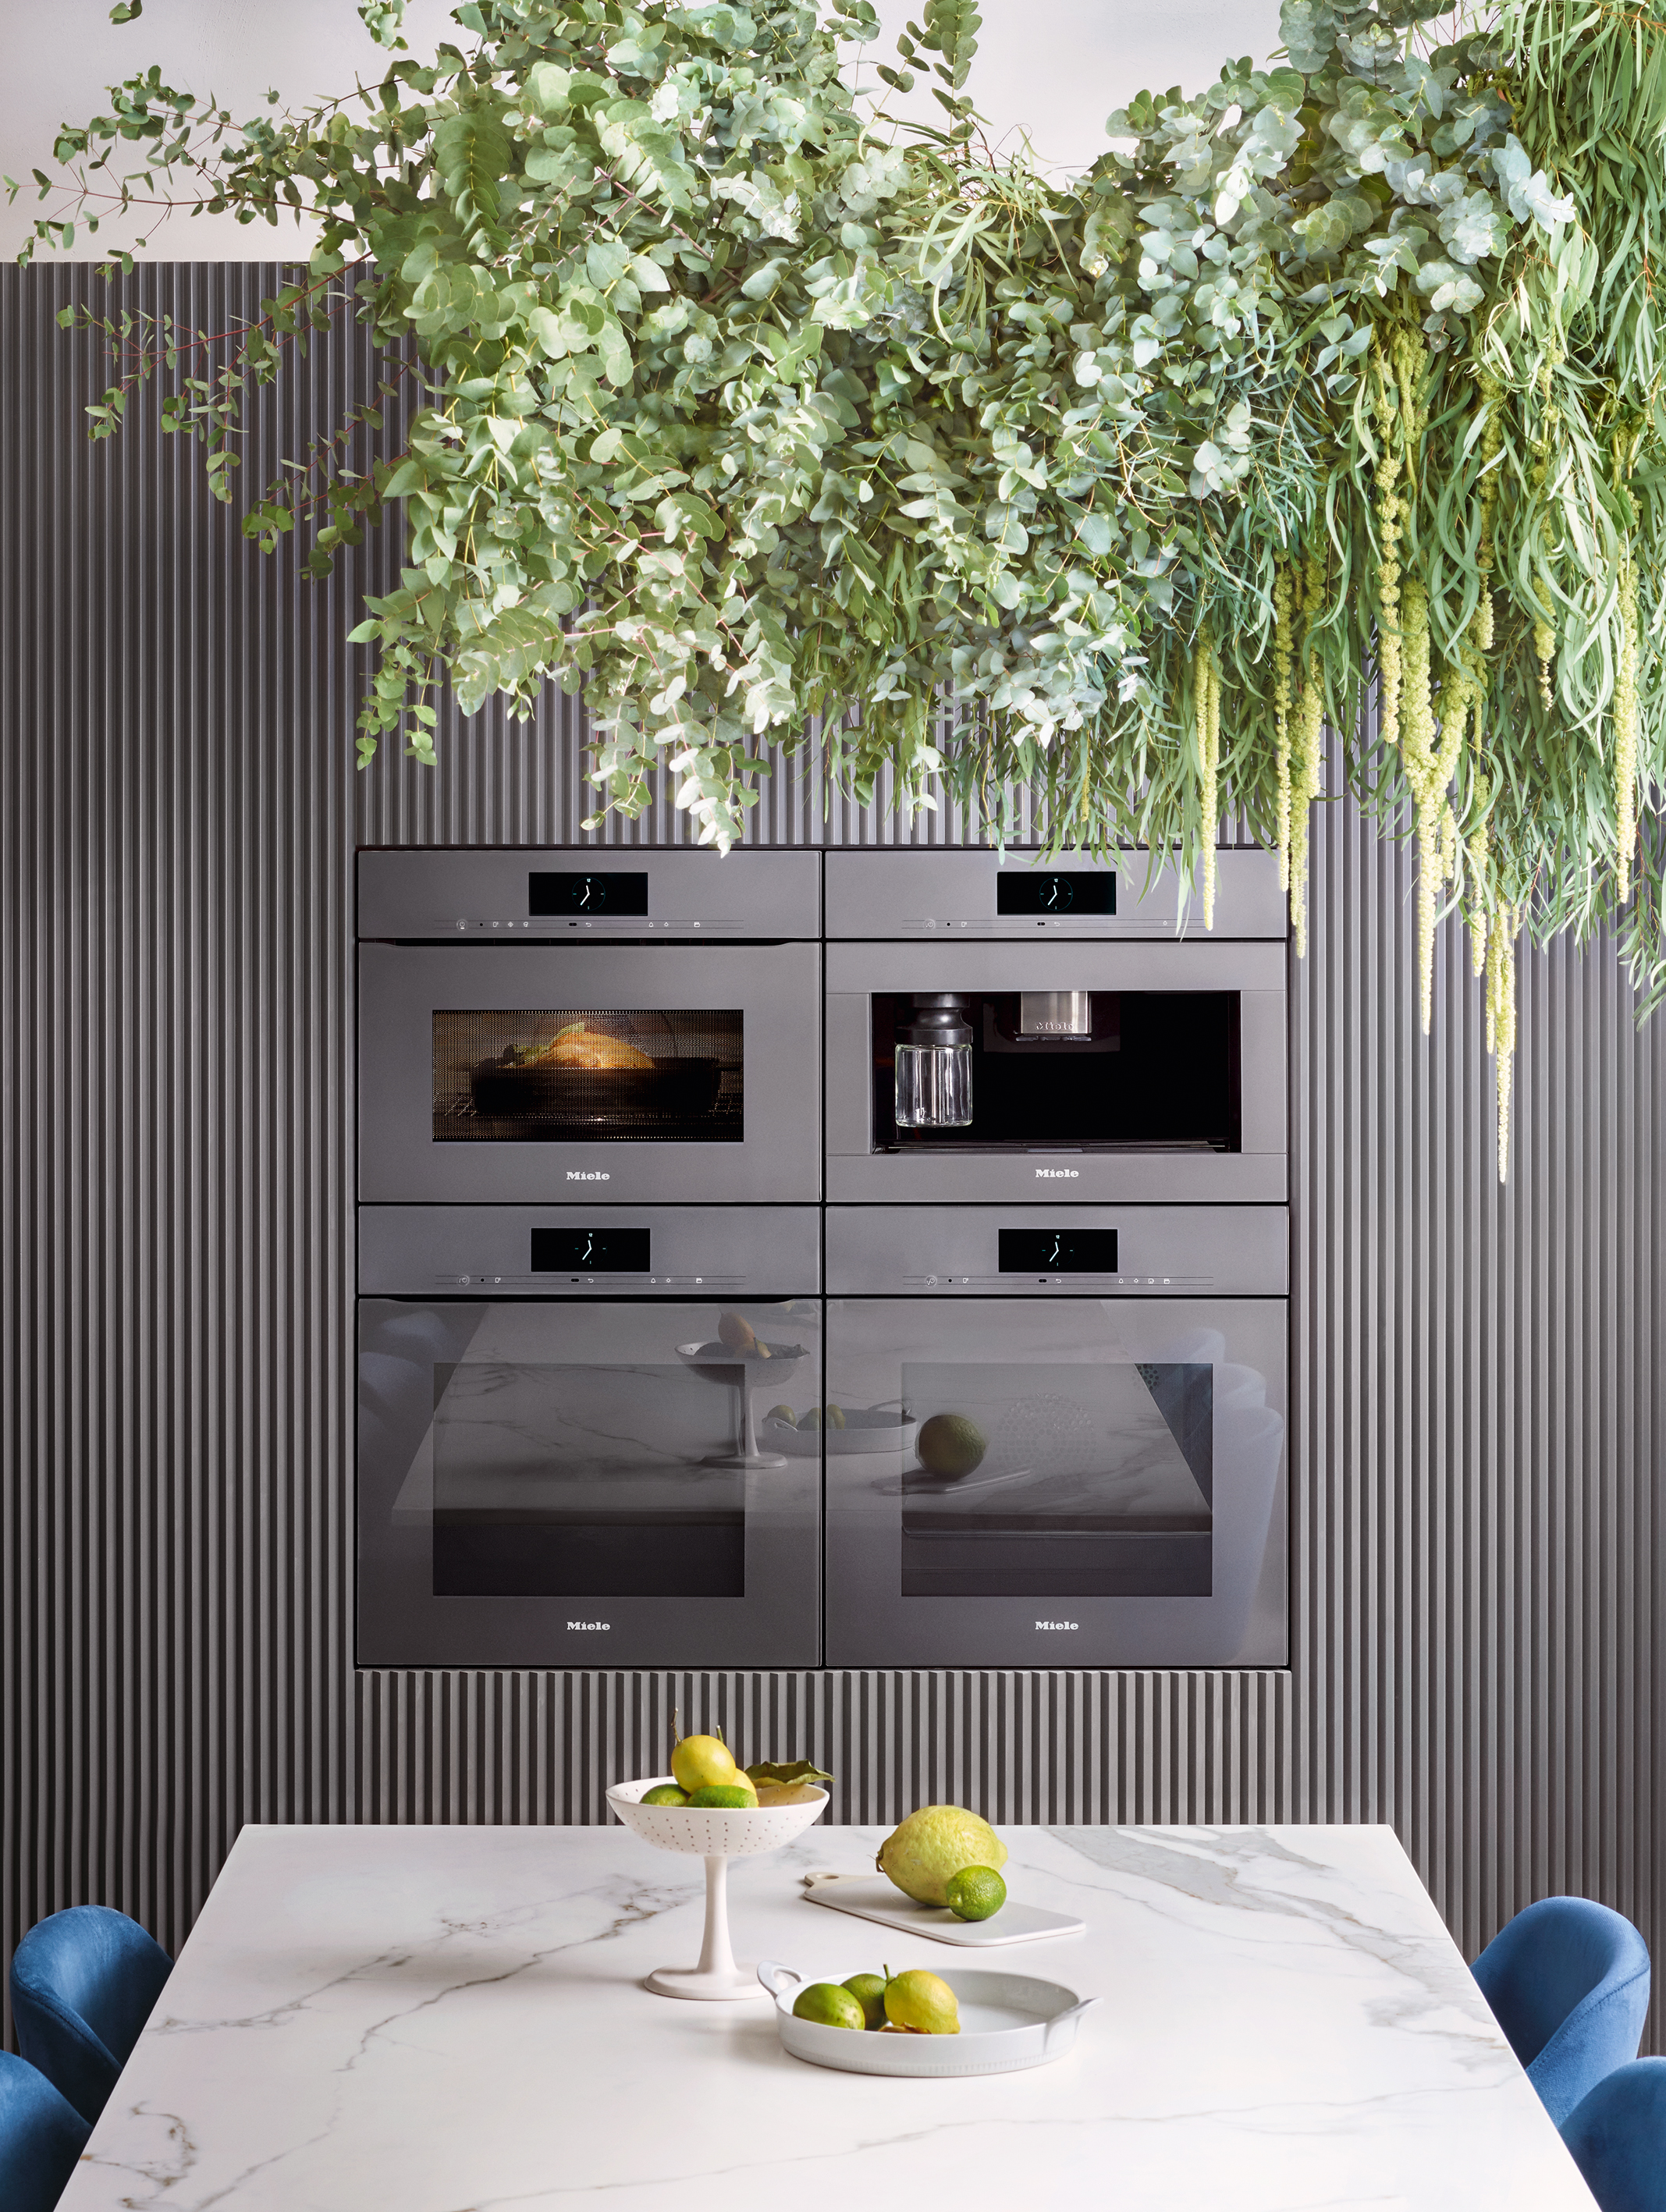 Generation 7000 The New Range Of Built In Appliances By